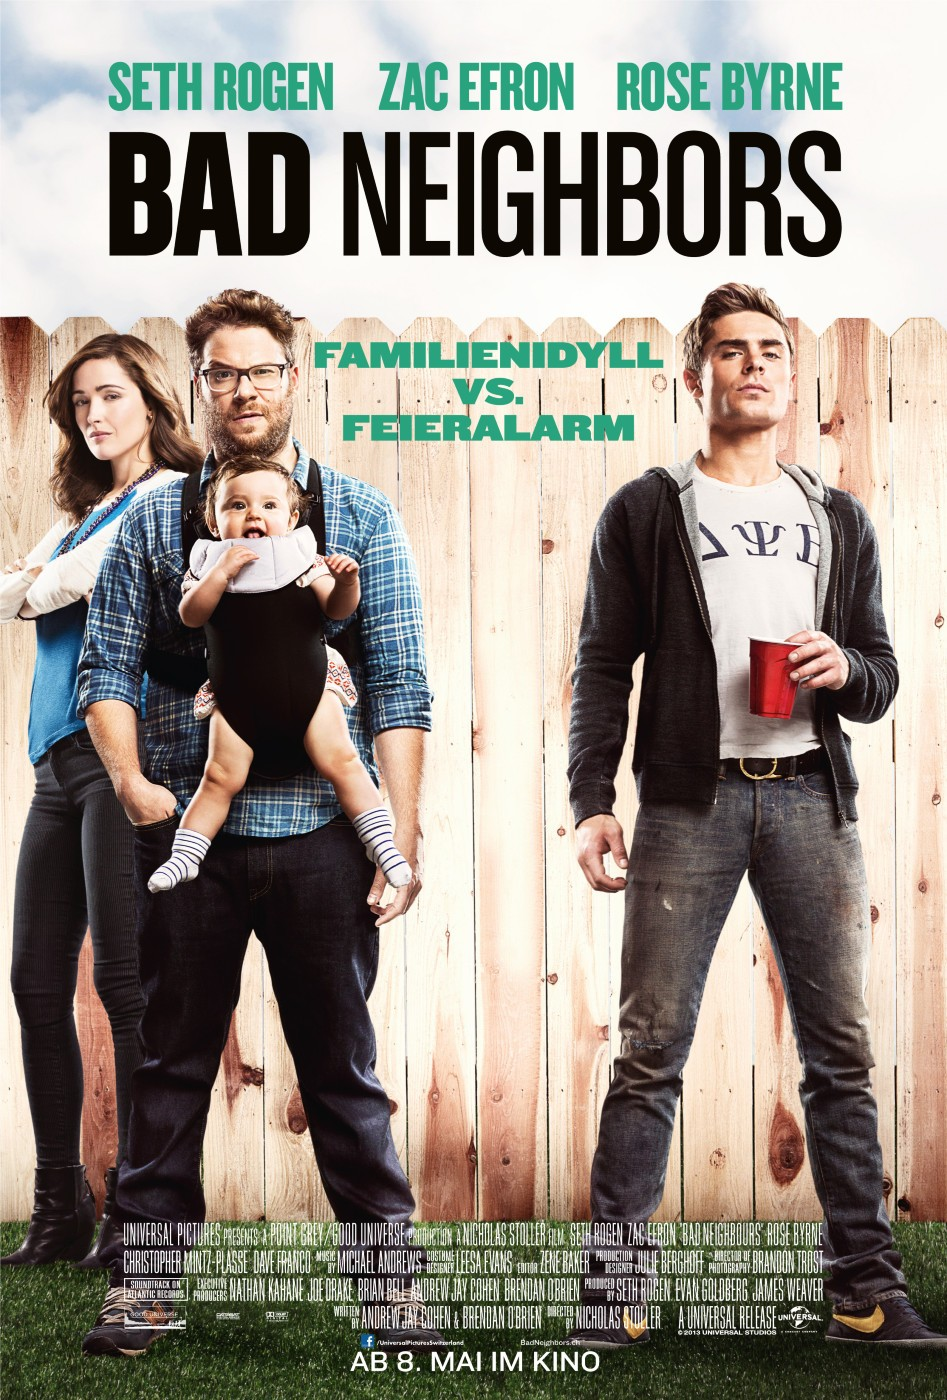 Neighbors-Official Poster Banner PROMO POSTER XLG-21MARCO2014